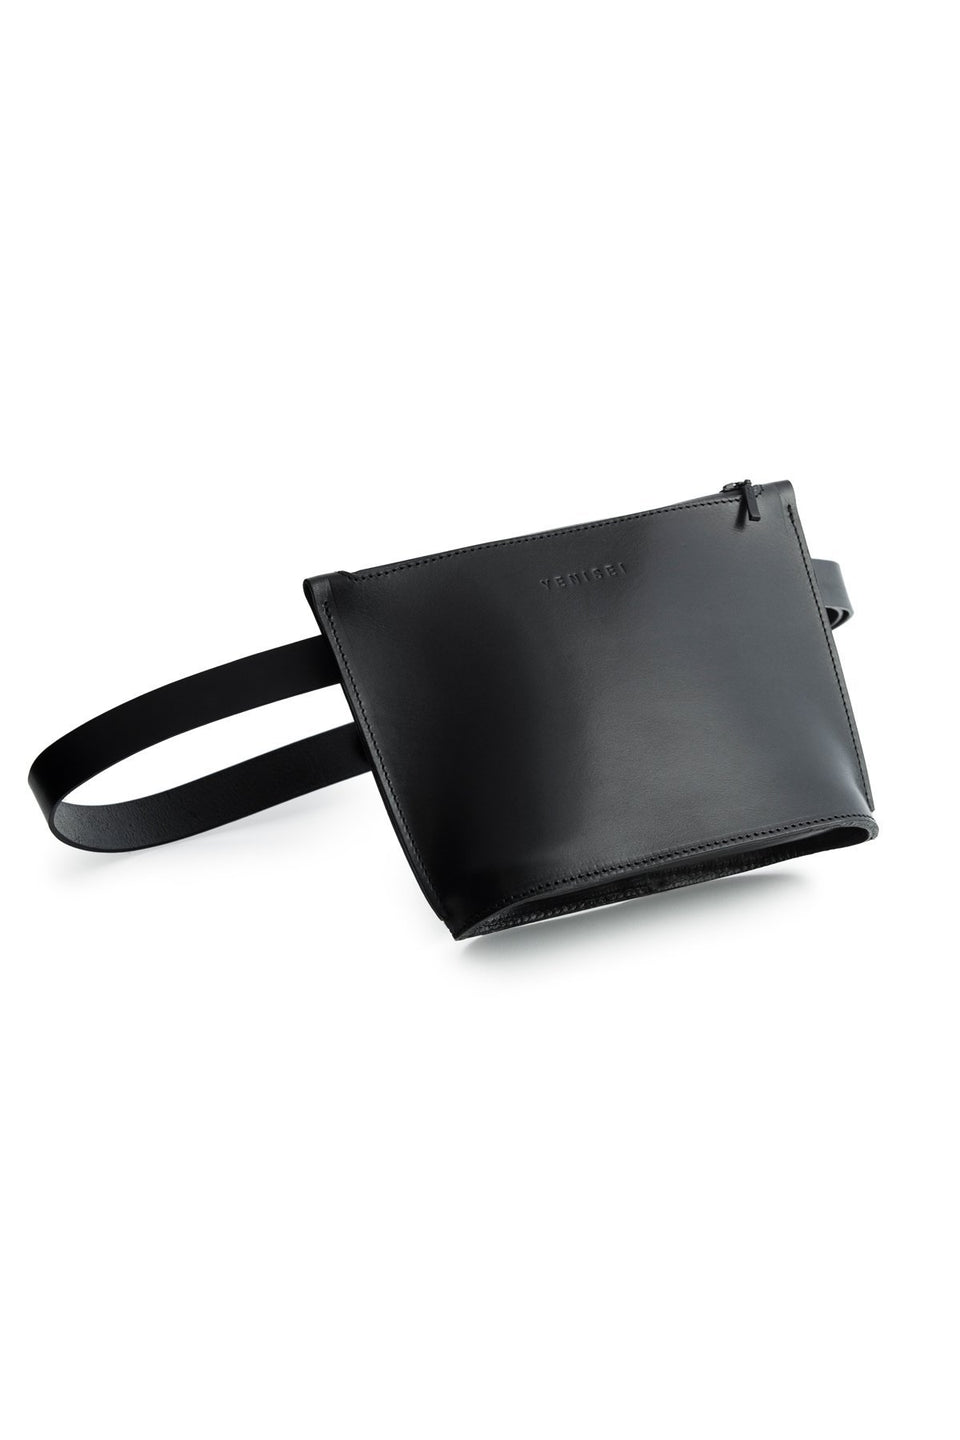 Yenisei Mayna Hip Bag